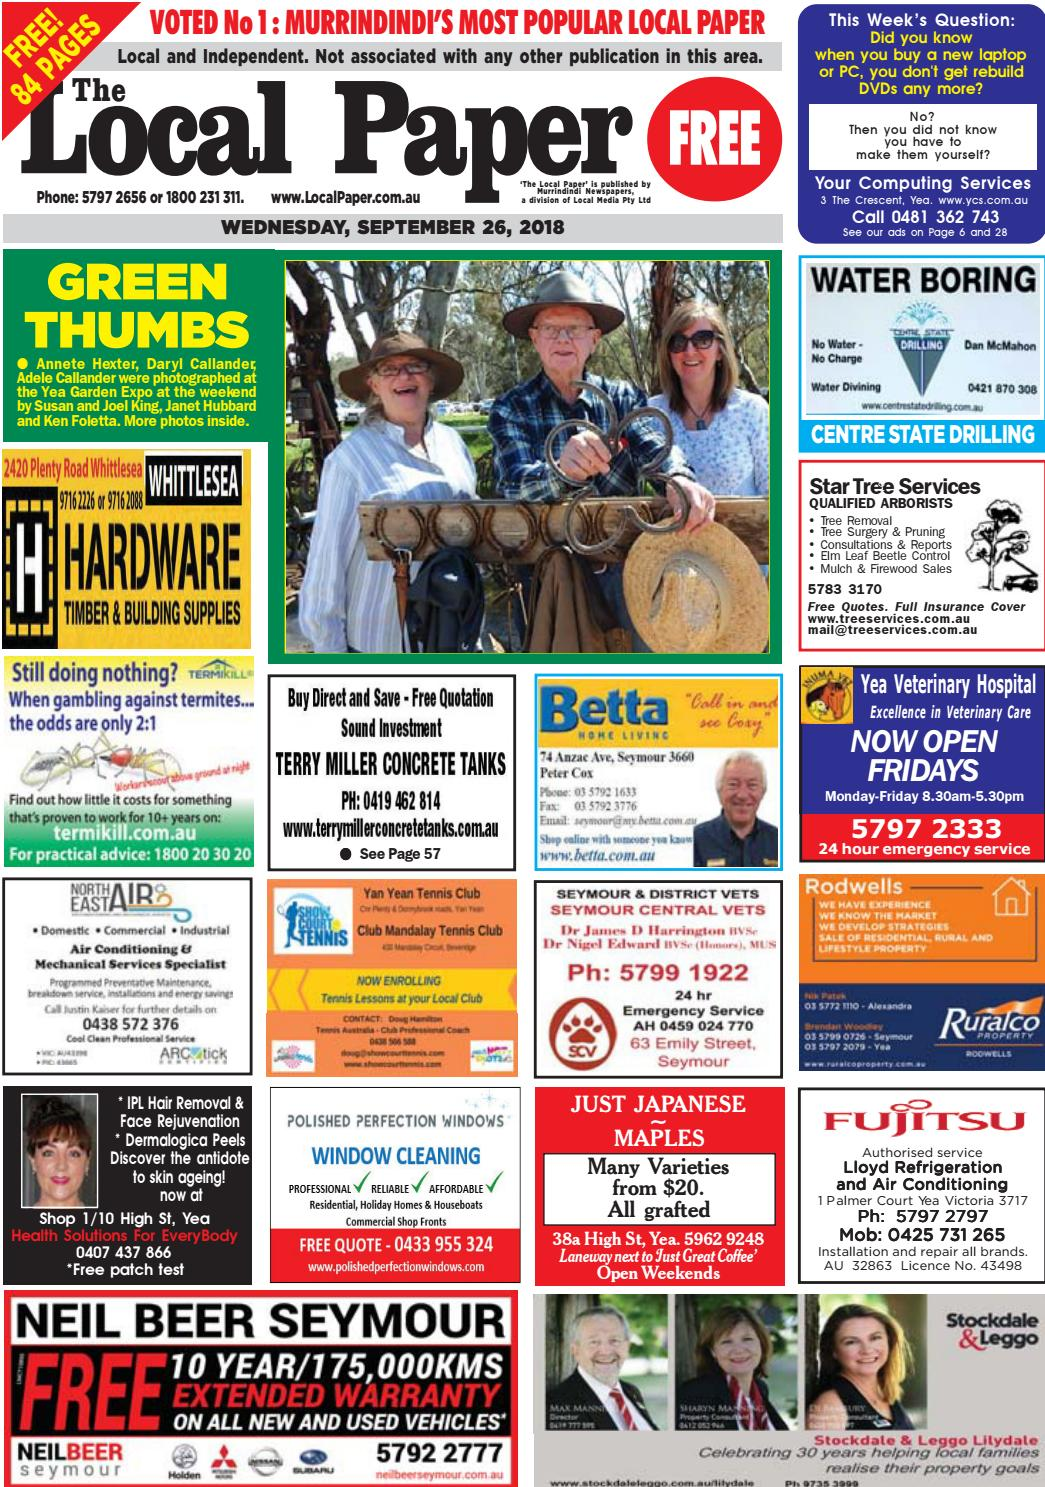 The Local Paper  September 26, 2018 by Ash Long - issuu